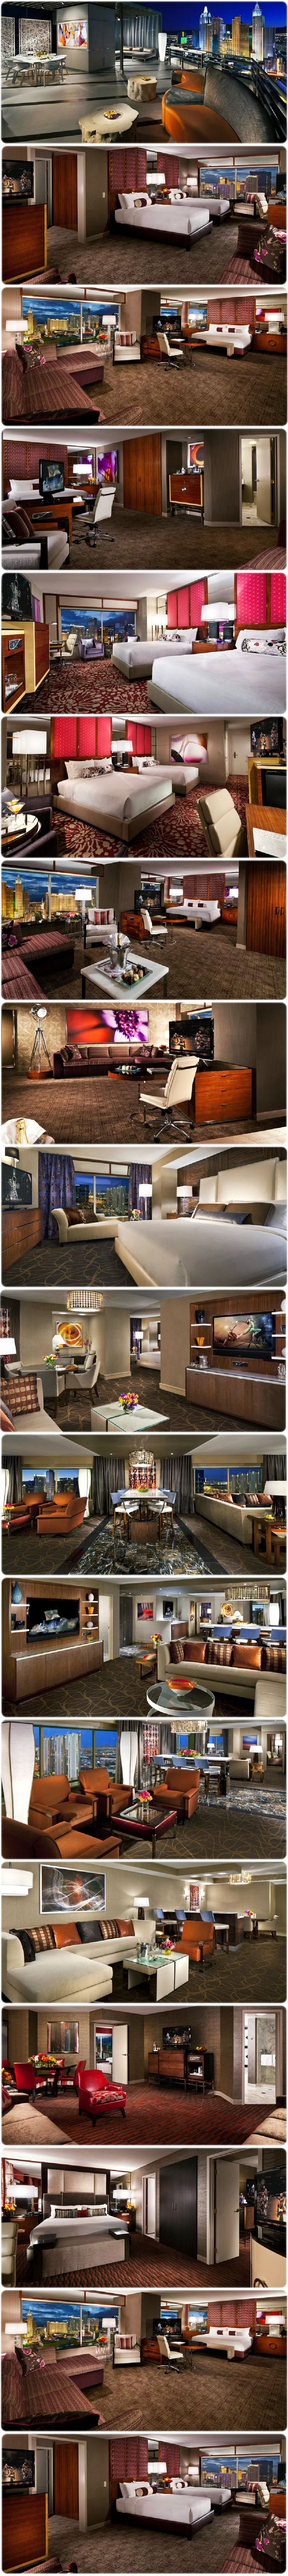 """MGM Grand Hotel & Casino, Las Vegas!  >>>  http://www.otel.com/hotels/mgm_grand_hotel_casino_las_vegas.htm?sm=pinterest  Use the code """"XZNYJG95"""" while making your reservation on otel.com, get 10% discount! http://www.otel.com/hotels/mgm_grand_hotel_casino_las_vegas.htm?sm=pinterest"""